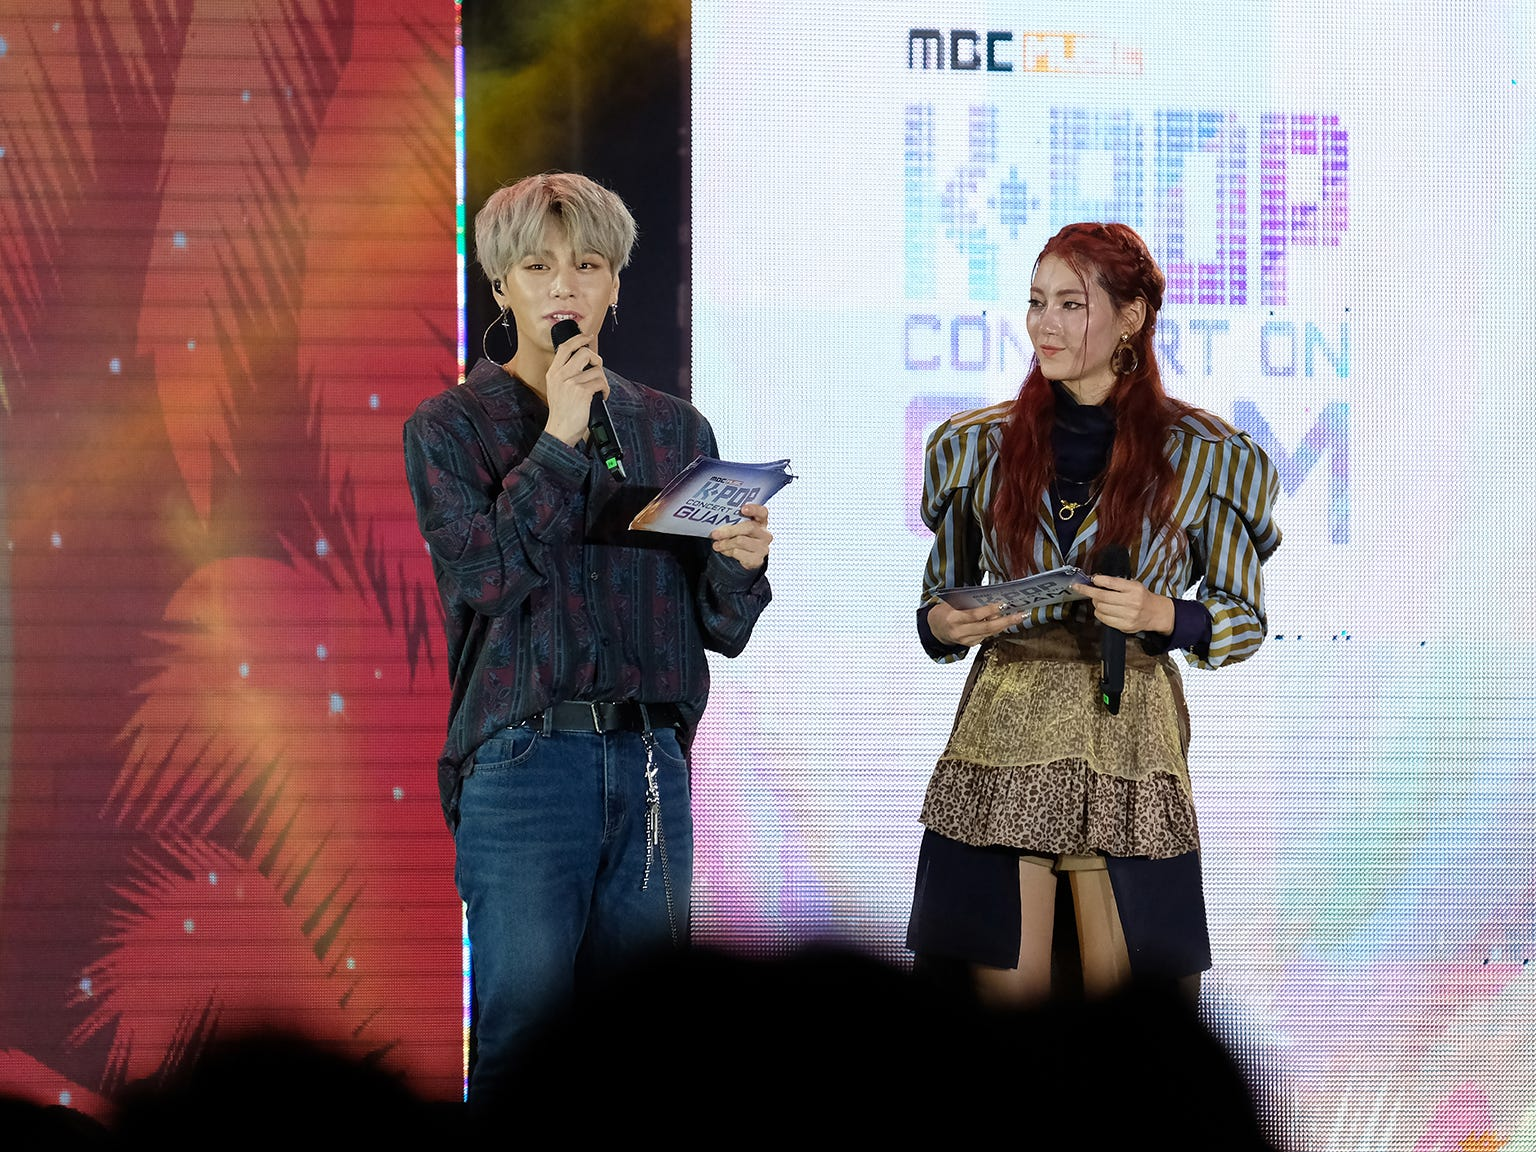 Kenta of JBJ95 and a member of  H.U.B. speak to the audience at the MBC Music K-Pop Concert on Saturday evening, December 1, 2018 at the Governor Joseph Flores Memorial. Park